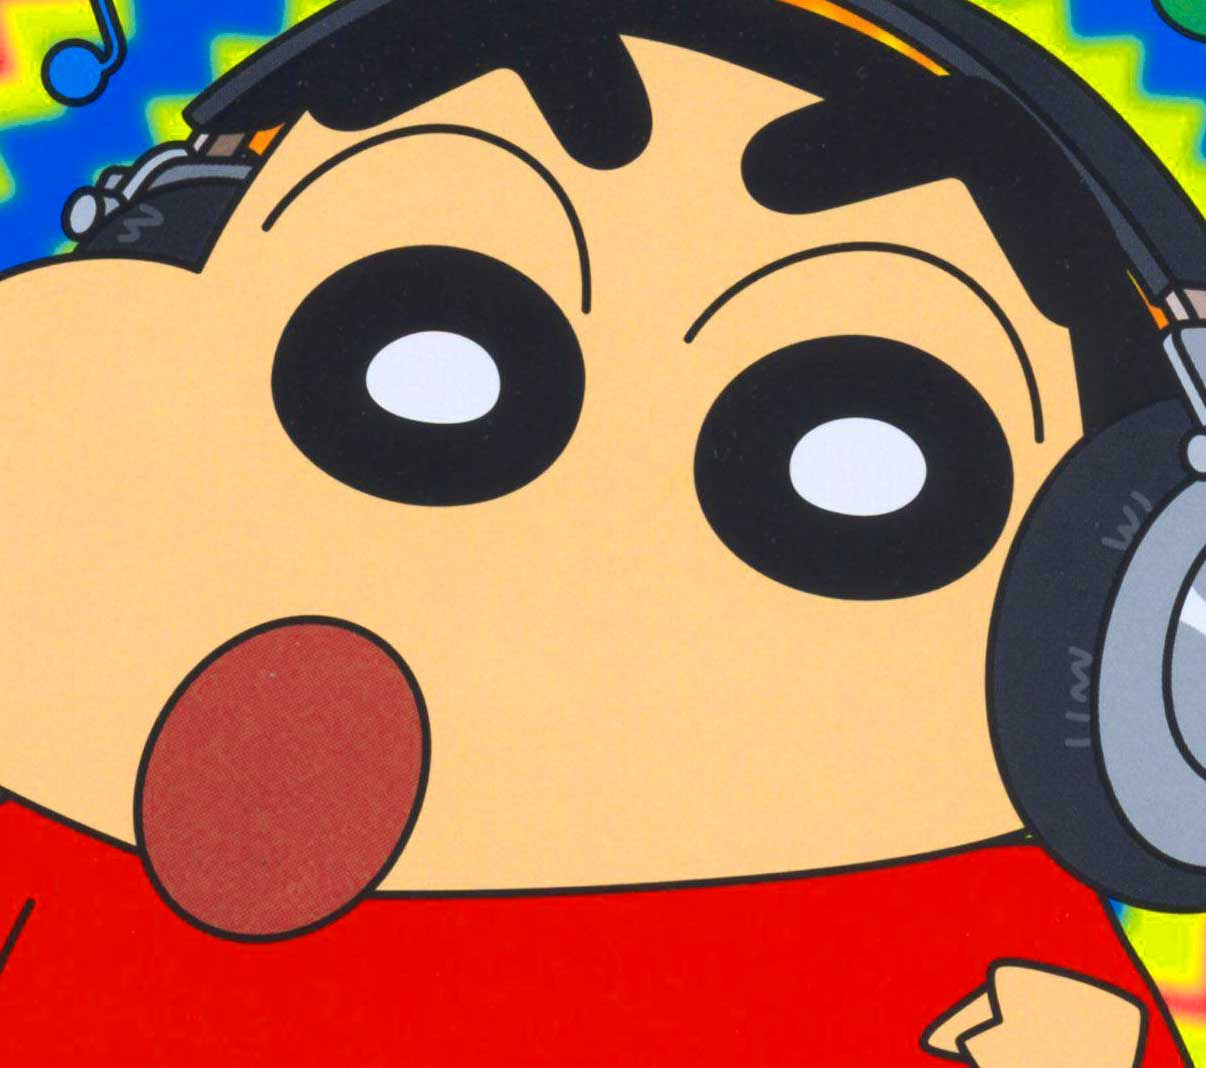 latest nice shinchan whatsapp dp Images pictures photo hd download